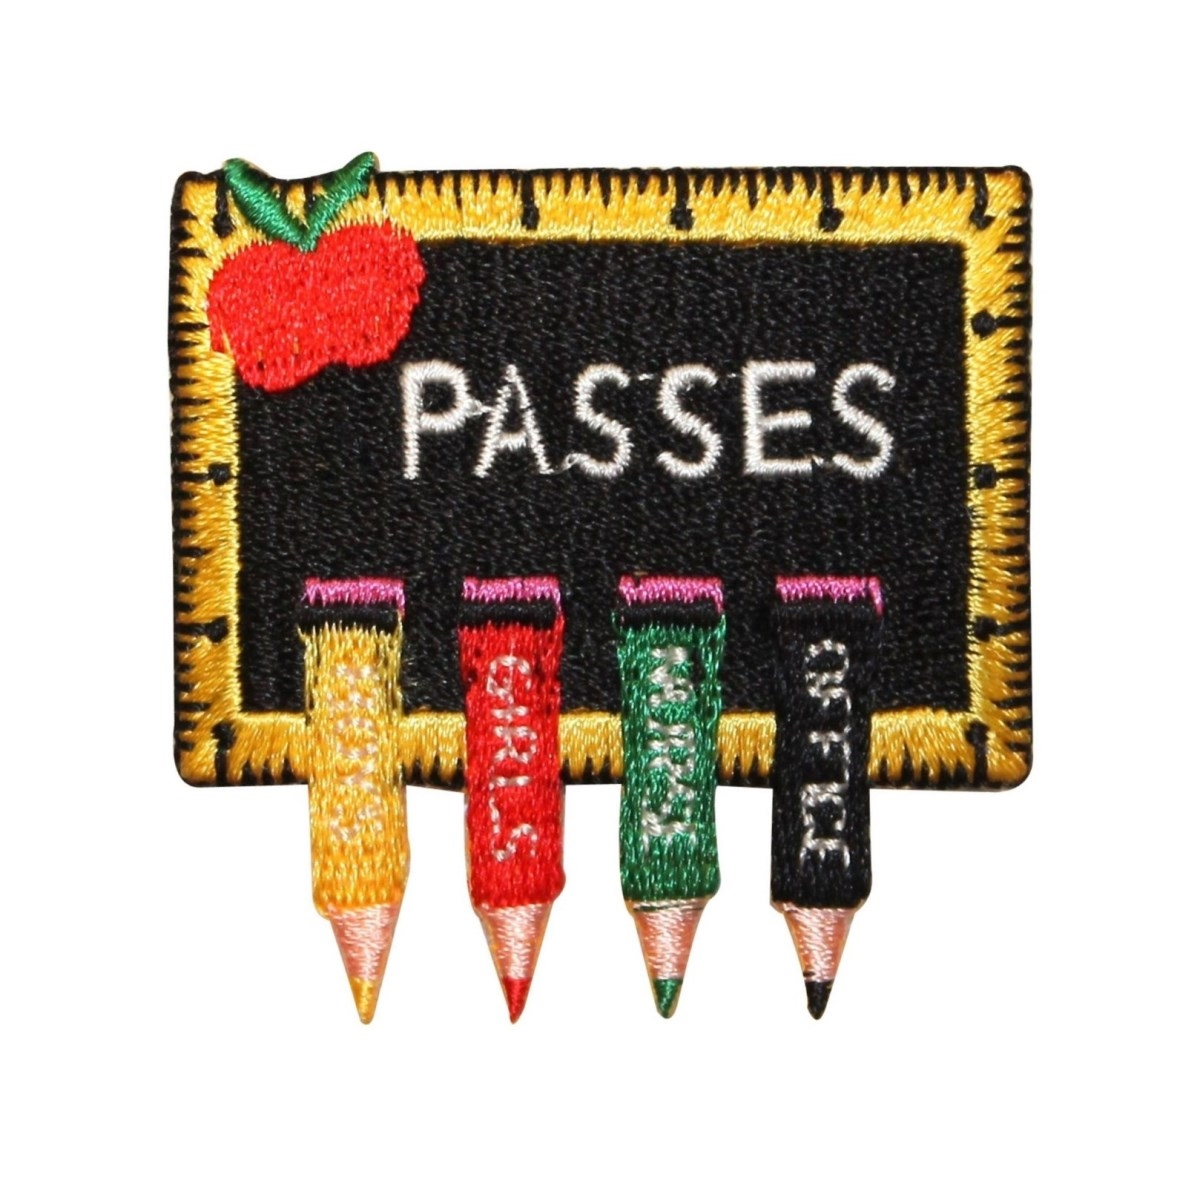 ID 0977 School Hall Passes Patch Chalk Board Clips Embroidered Iron On Applique